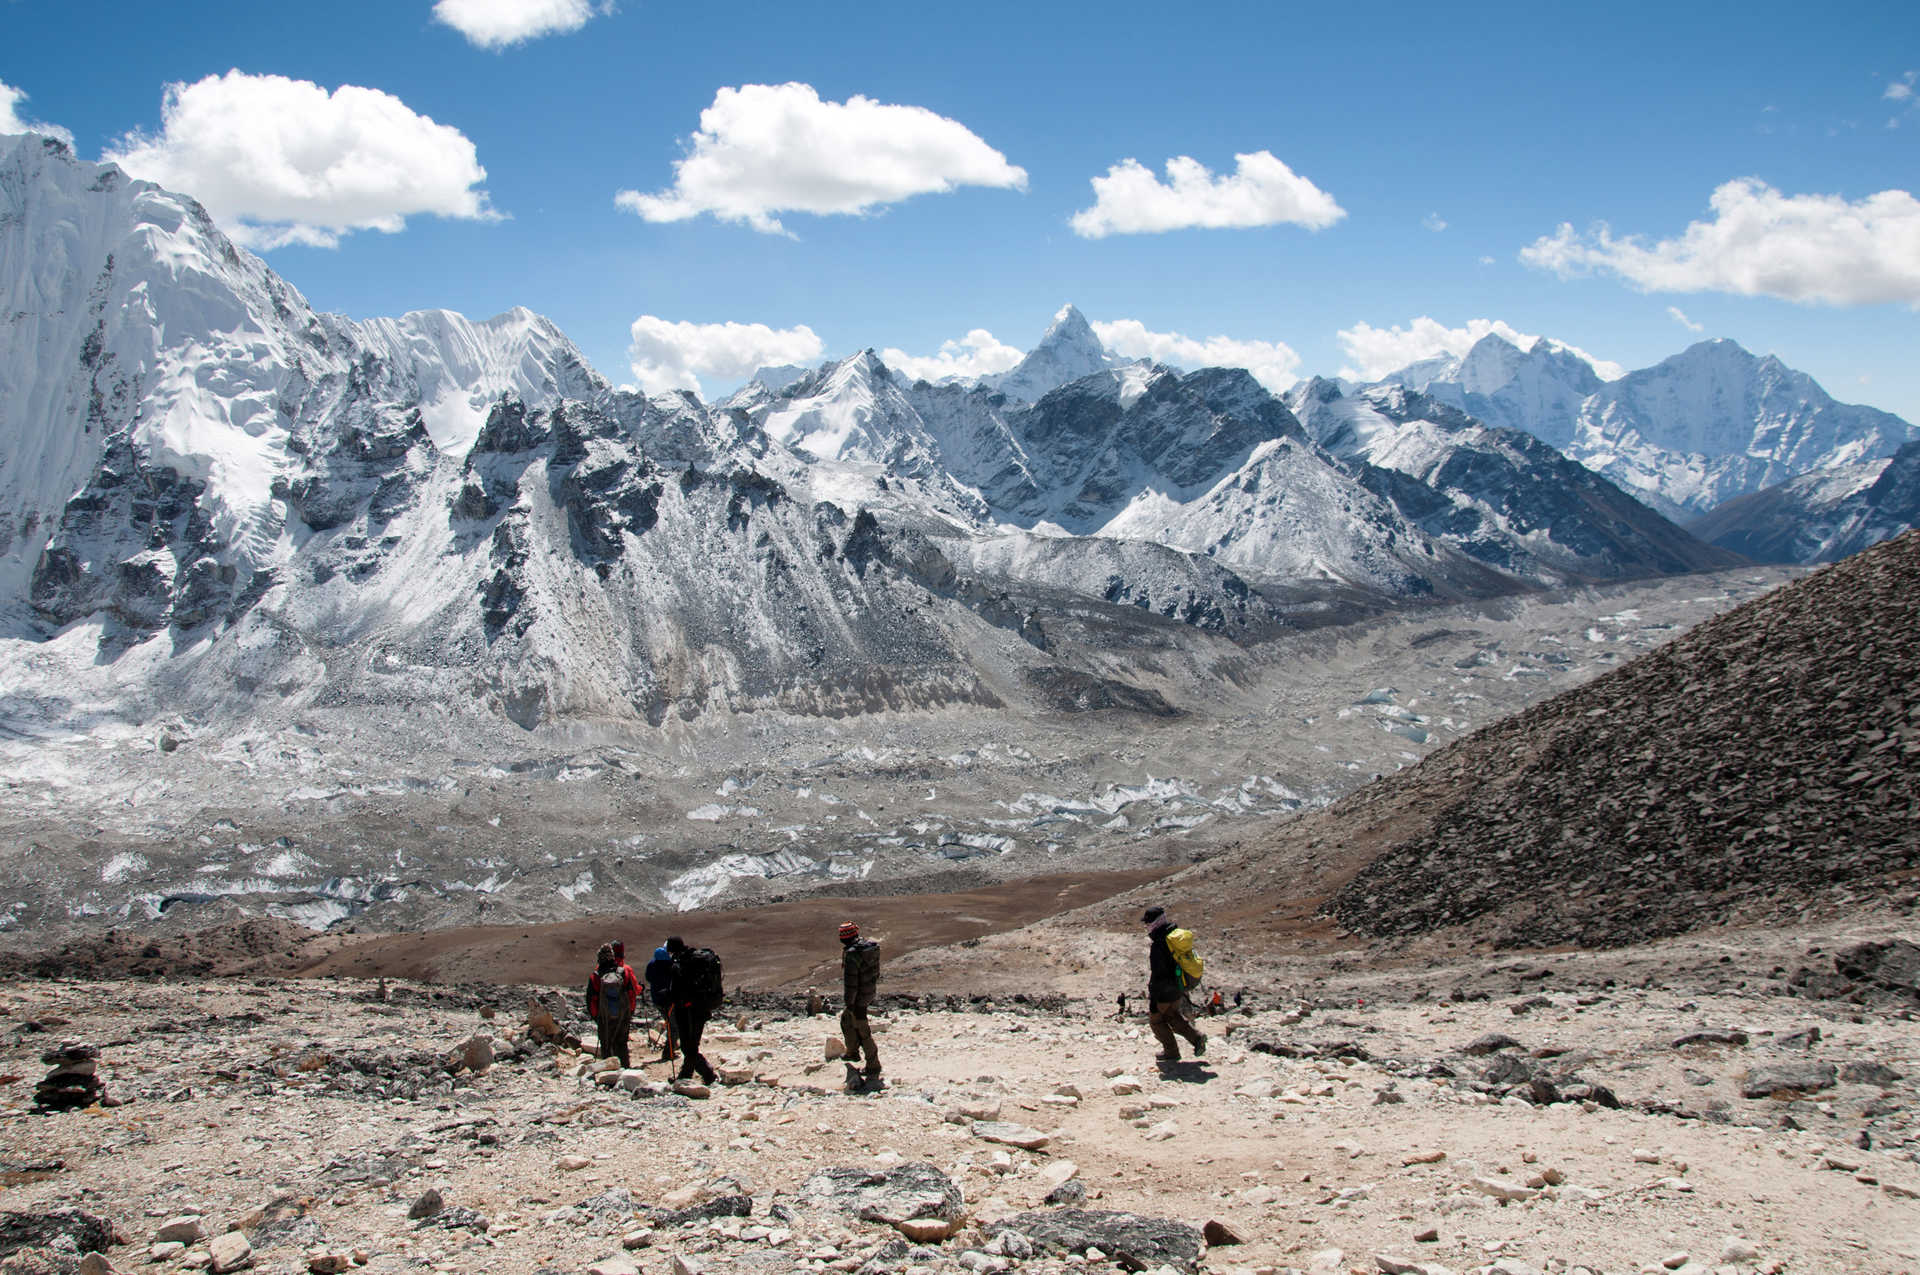 Hikers in the Everest region